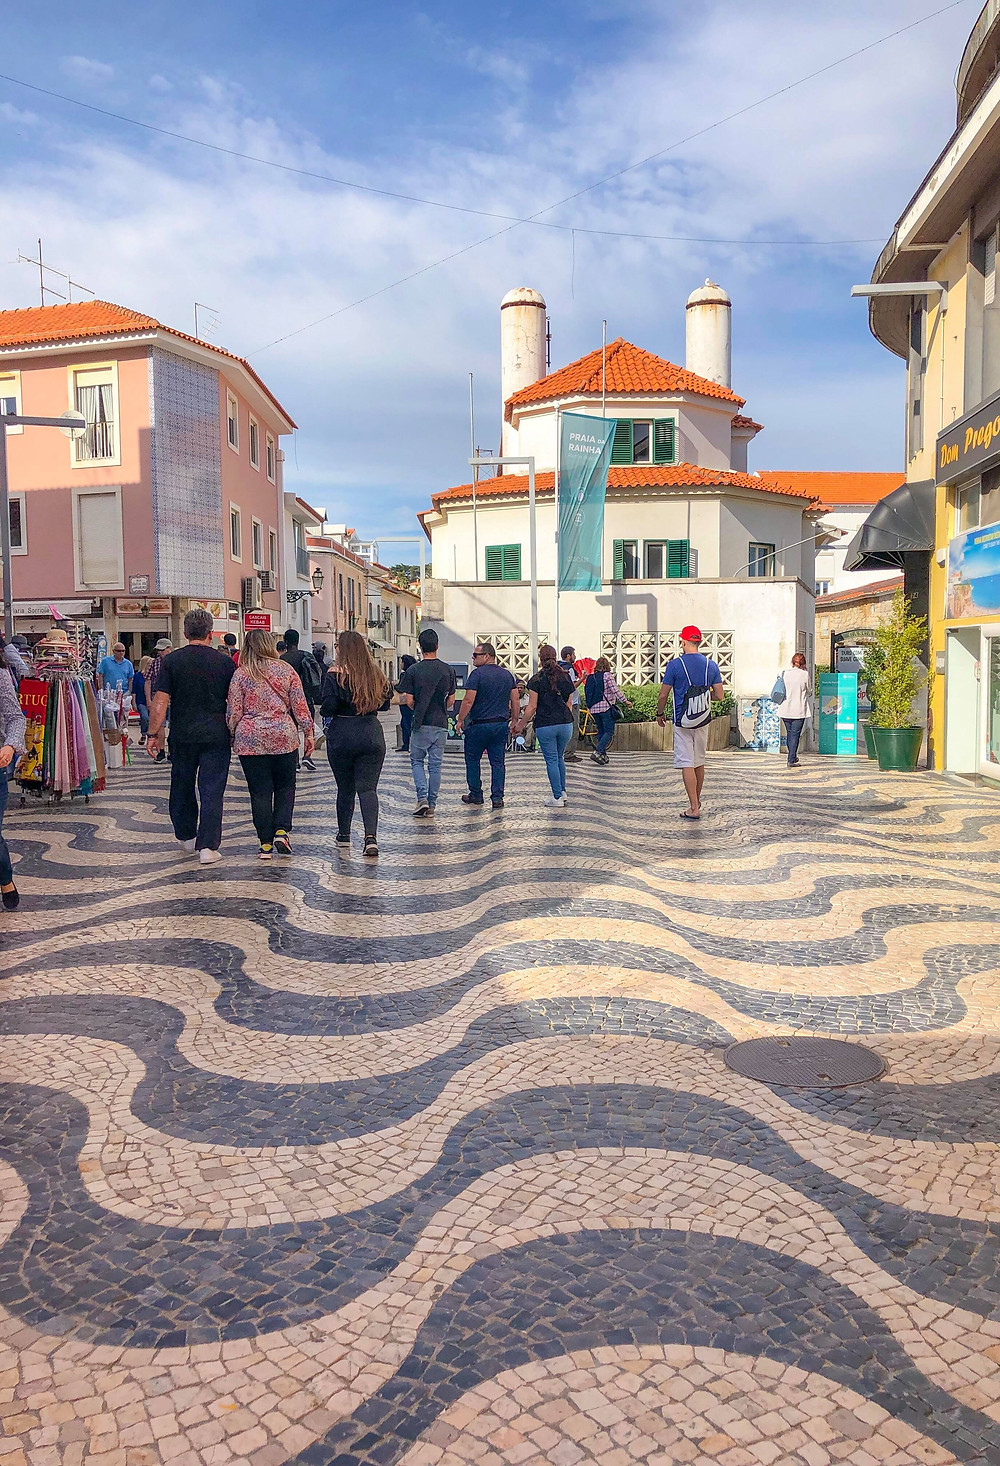 Beautiful patterned tiled floors in Old Town city center Cascais Portugal. Explore more on girl travel fashion blog xoxojho.